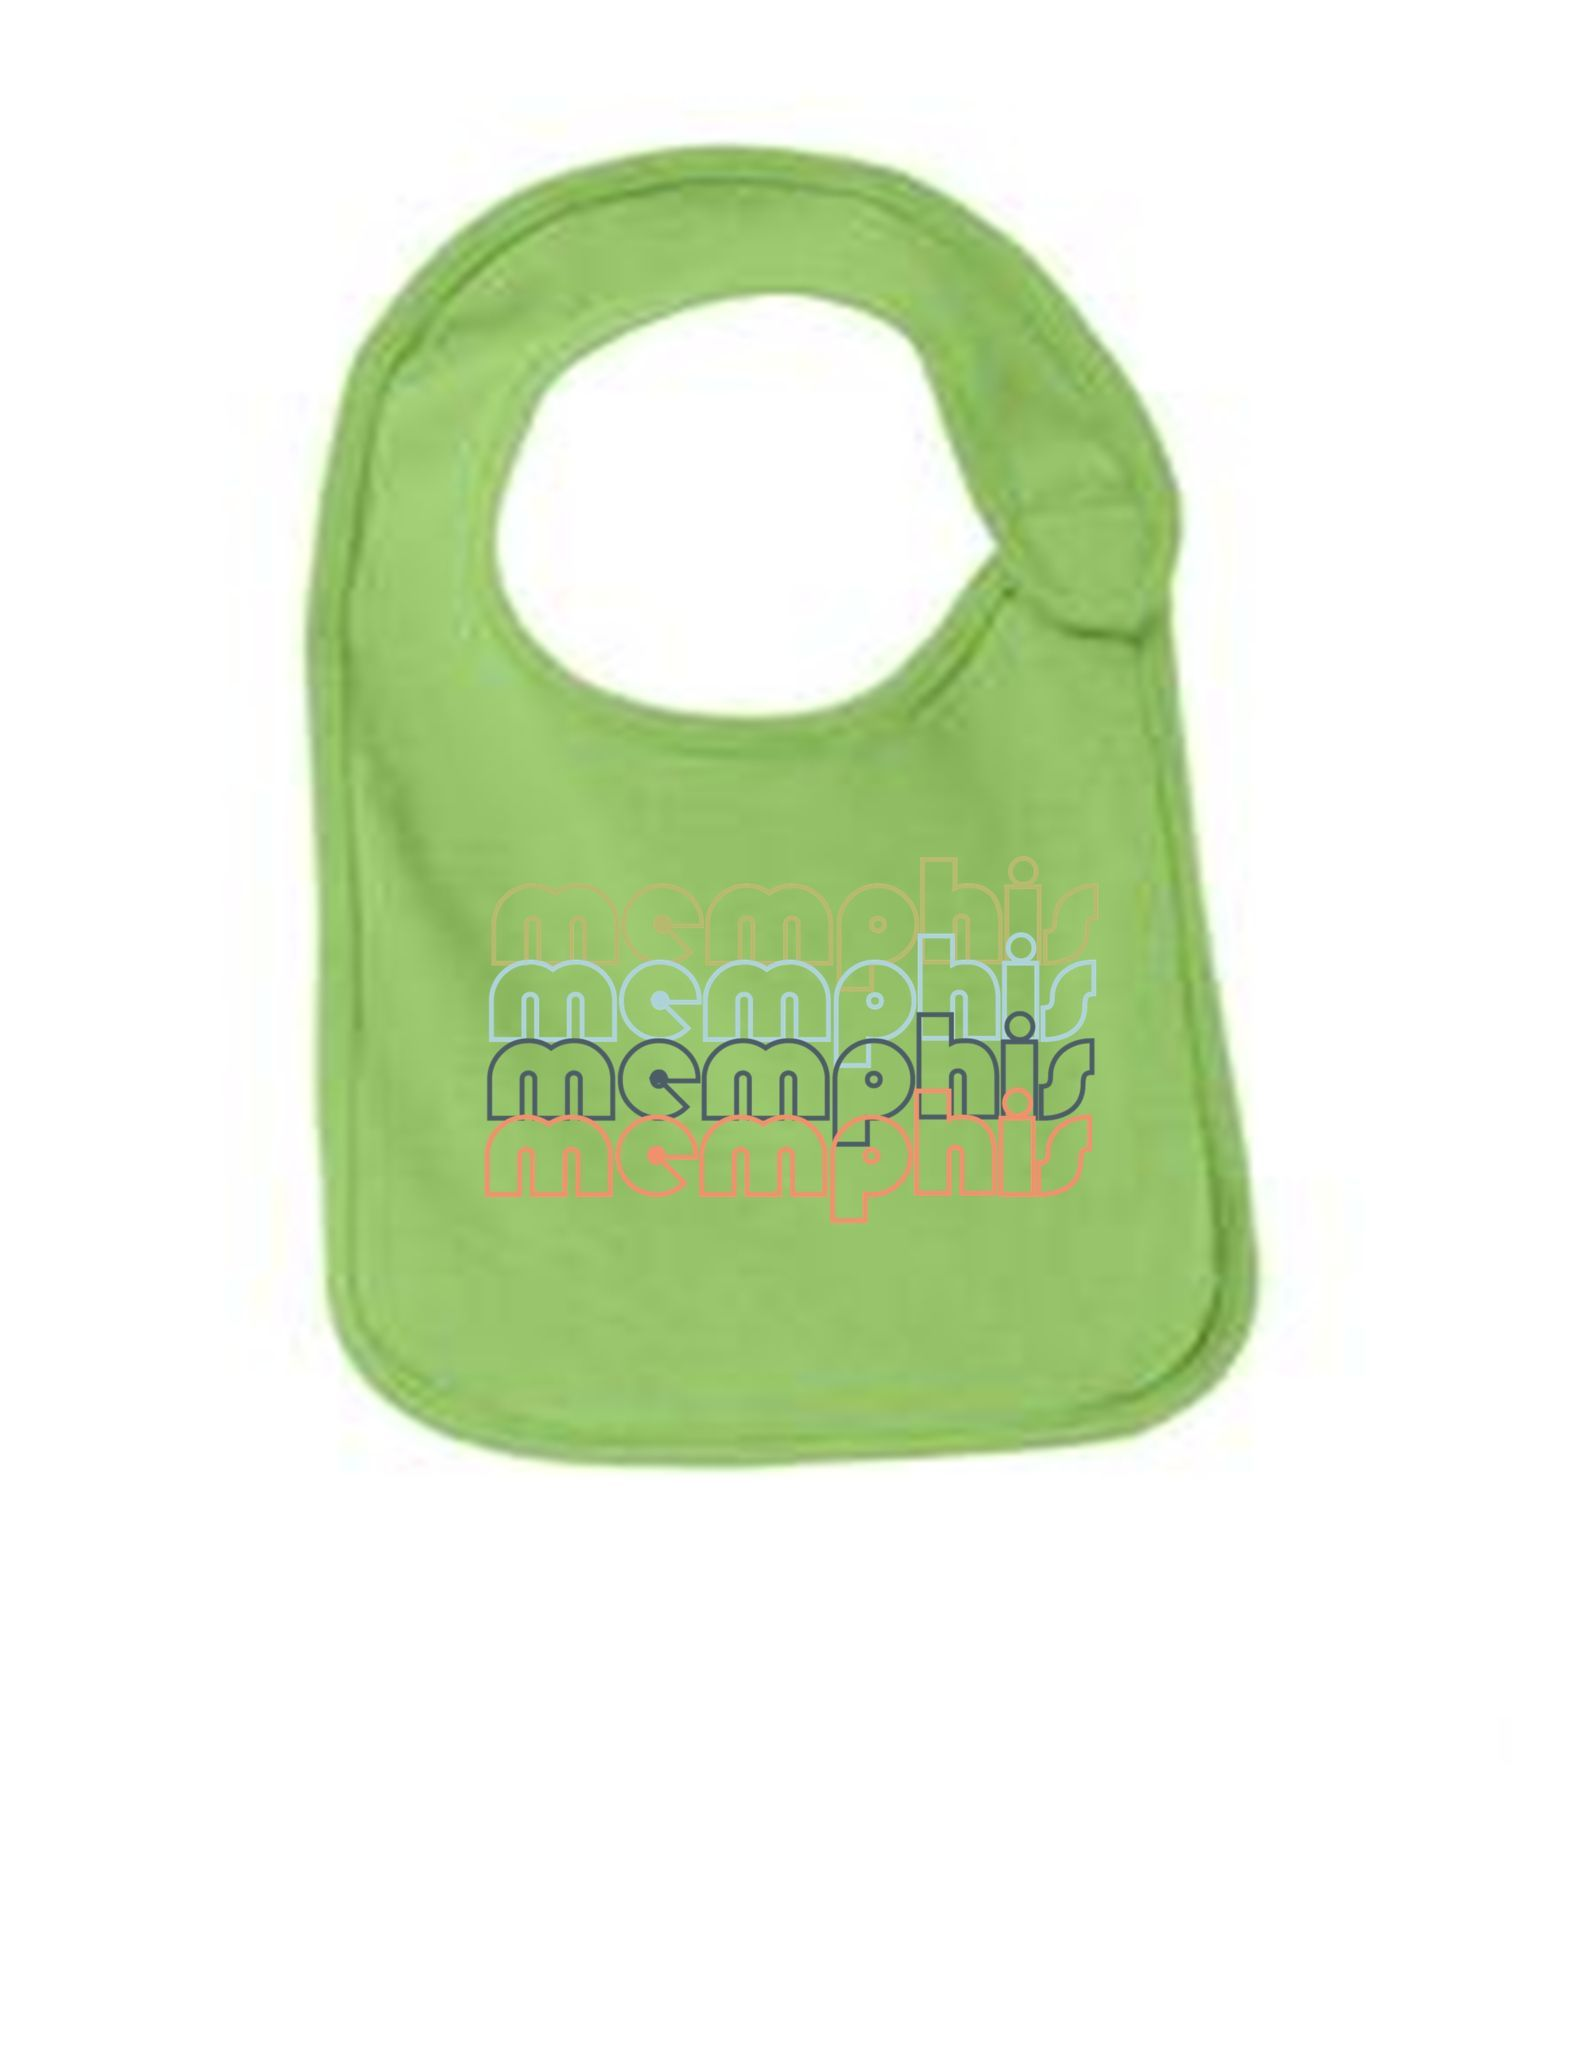 Memphis-Tennessee-Retro-Funny-Infant-Jersey-Bib Have fun with your future grown ups. These are adorable bibs, sure to bring a smile to everyone. Super Soft Jersey Cotton!